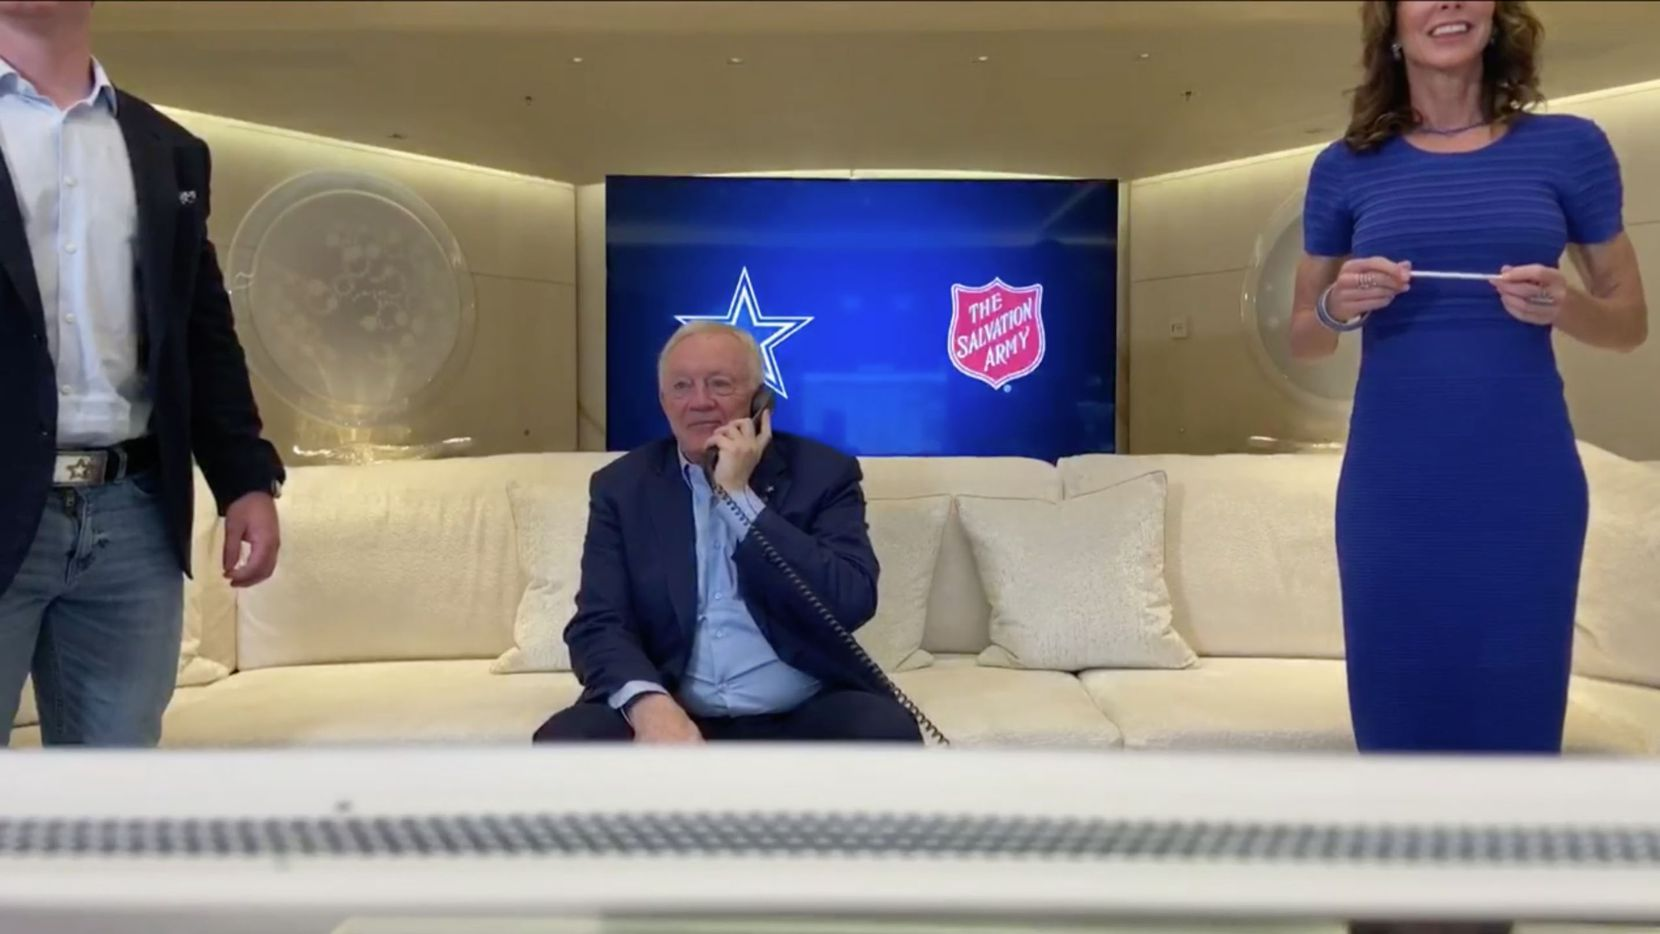 Screen capture of Dallas Cowboys team owner Jerry Jones talking on the phone to the Dallas Cowboys pick CeeDee Lamb, who was chosen by the Cowboys in the first round of the NFL Draft on Thursday, April 23, 2020. Due to the coronavirus pandemic the NFL Draft was held virtually.